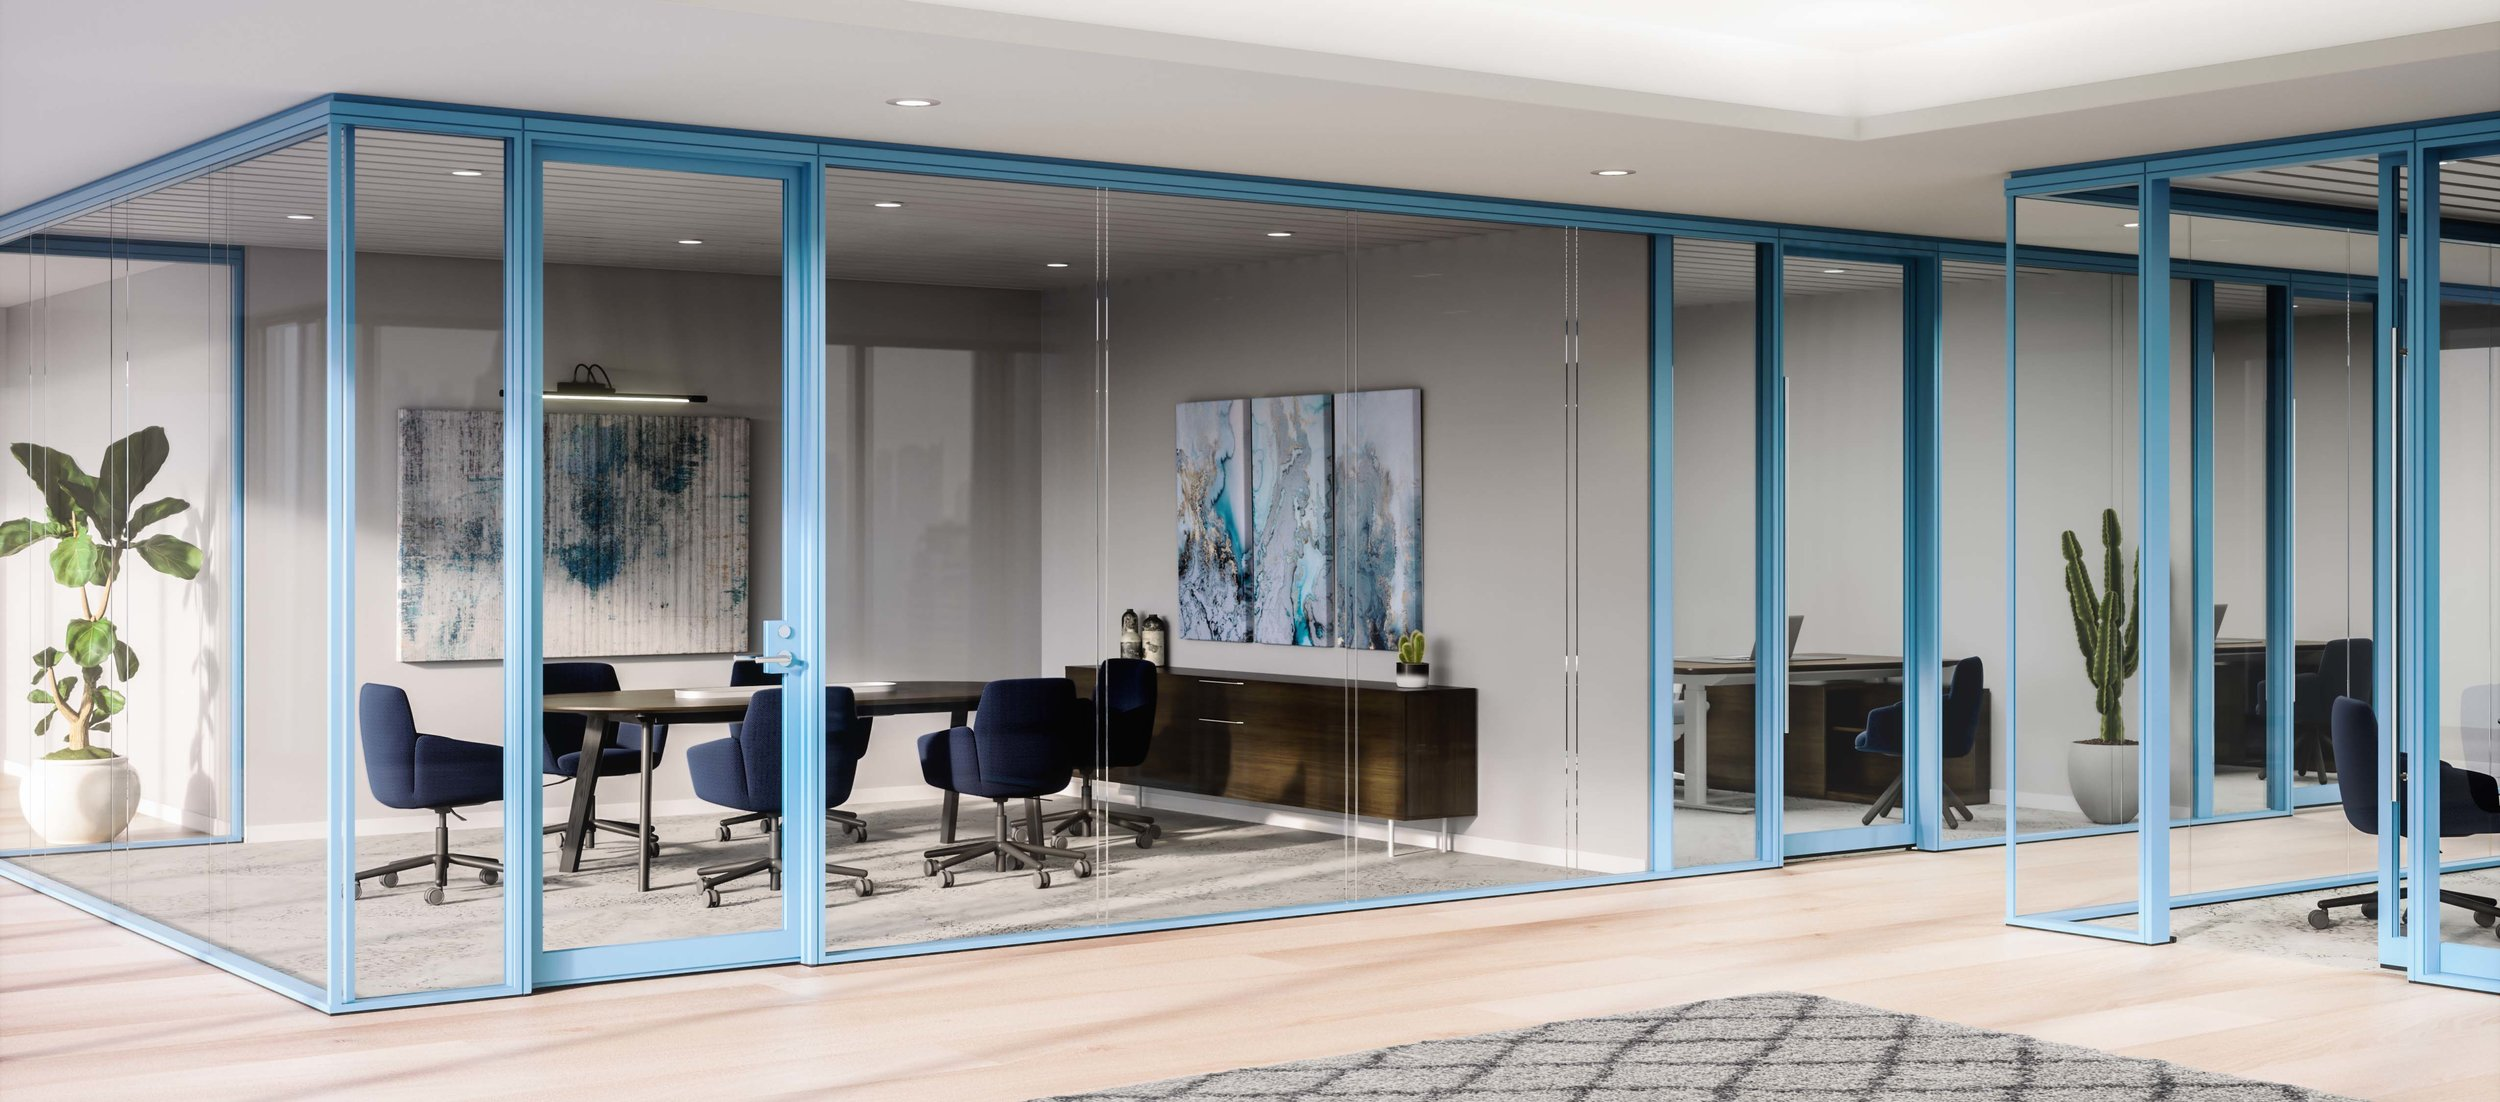 6.98914.0.Enclose Frameless Glass Haworth Moveable Walls with Poppy meeting room.jpg